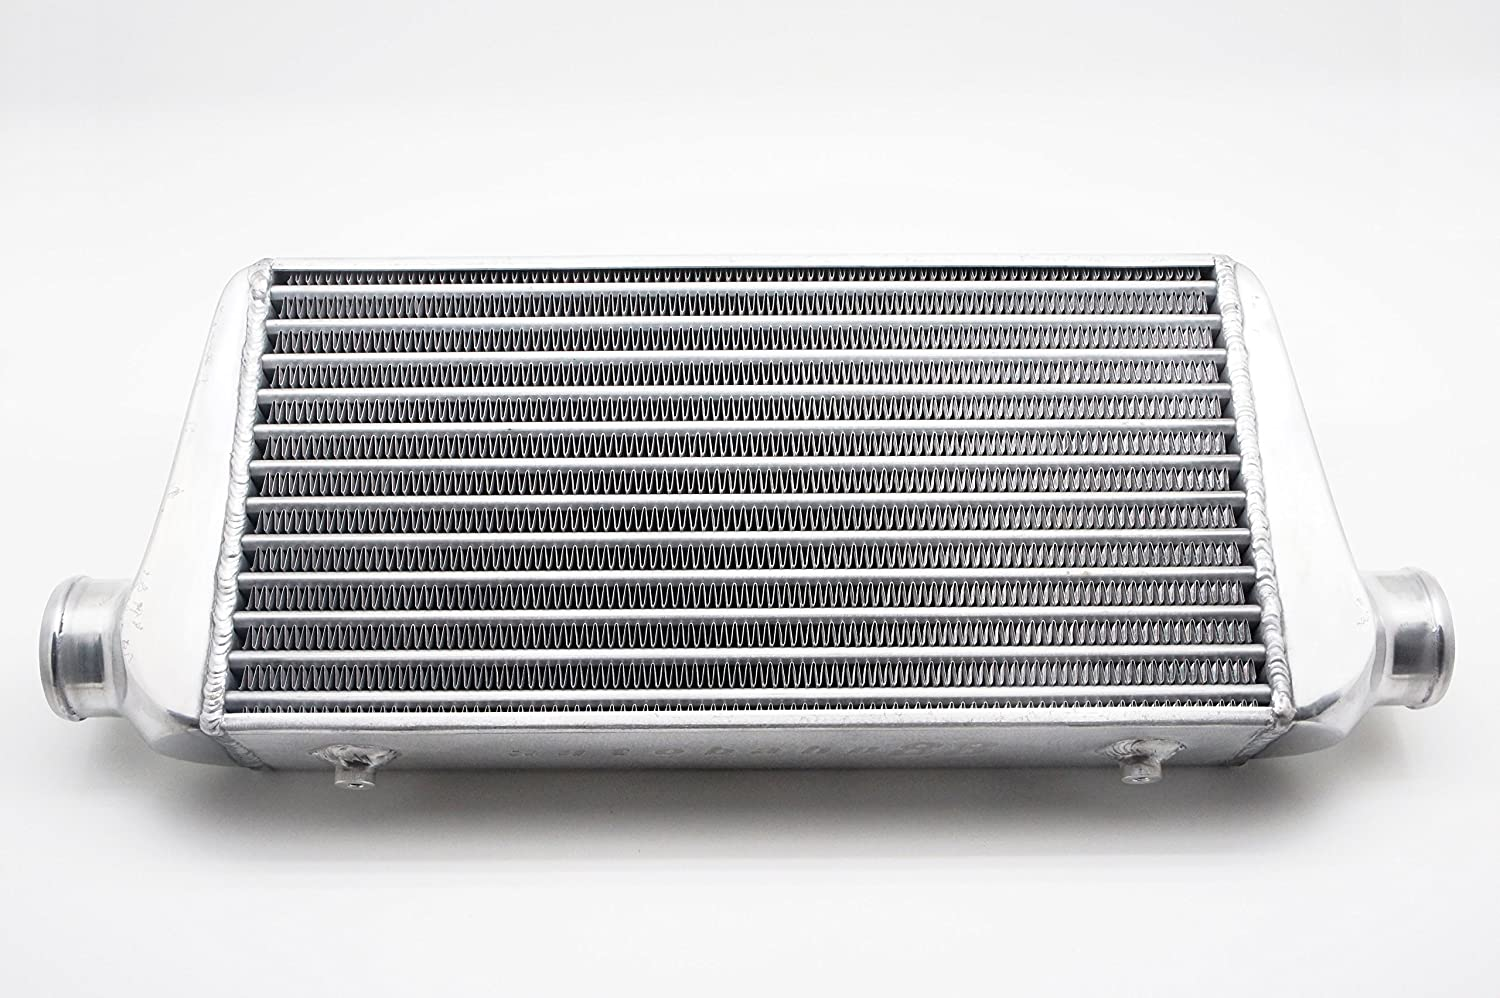 450x300x75mm Aluminum Universal Front-Mount Turbo Intercooler FMIC For Inlet Outlet 76mm 3 Pipe Tube Bar /& Plate Heat Exchanger Intercooler